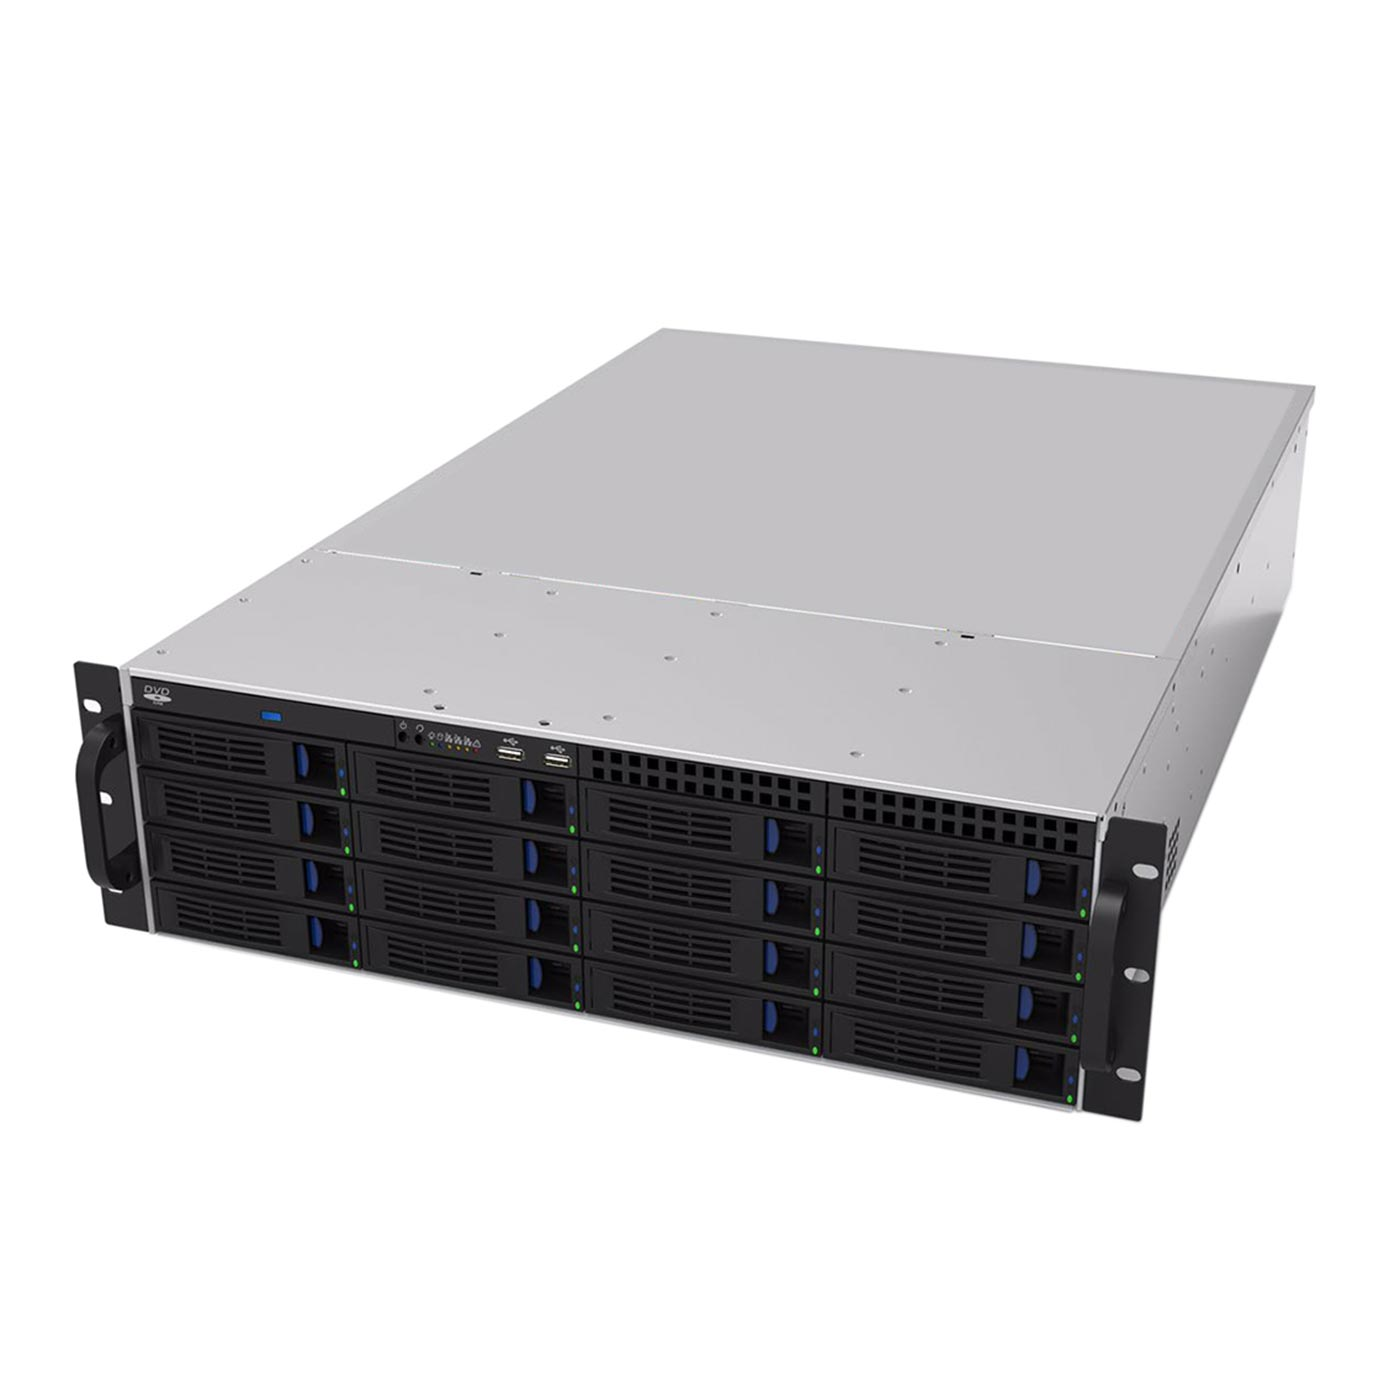 Серверный корпус 3U NR-R316 БП 2x1000Вт 16xHot Swap SAS/SATA (EATX 12x13, Slim CD, 650mm) черный